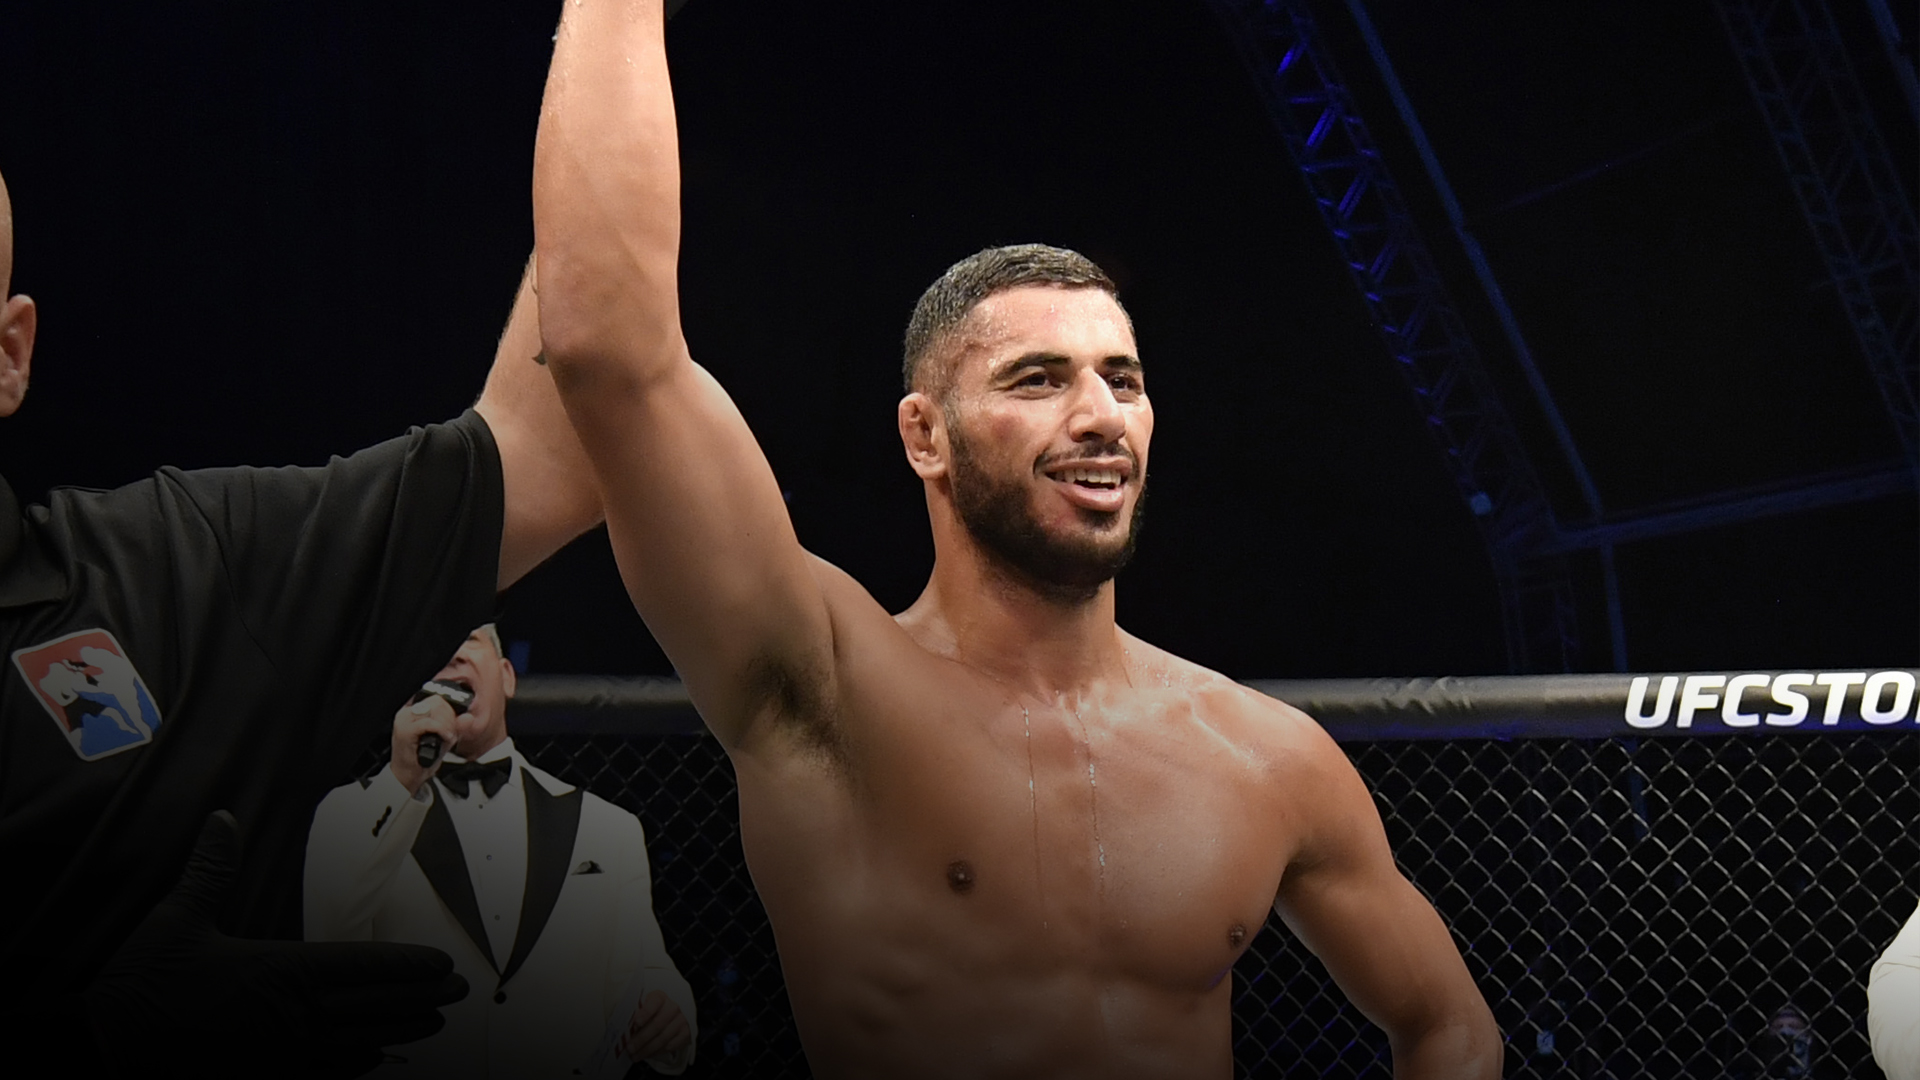 Mounir Lazzez celebrates after his unanimous-decision victory over Abdul Razak Alhassan in their welterweight fight during the UFC Fight Night event inside Flash Forum on UFC Fight Island on July 16, 2020 in Yas Island, Abu Dhabi, United Arab Emirates. (Photo by Jeff Bottari/Zuffa LLC)